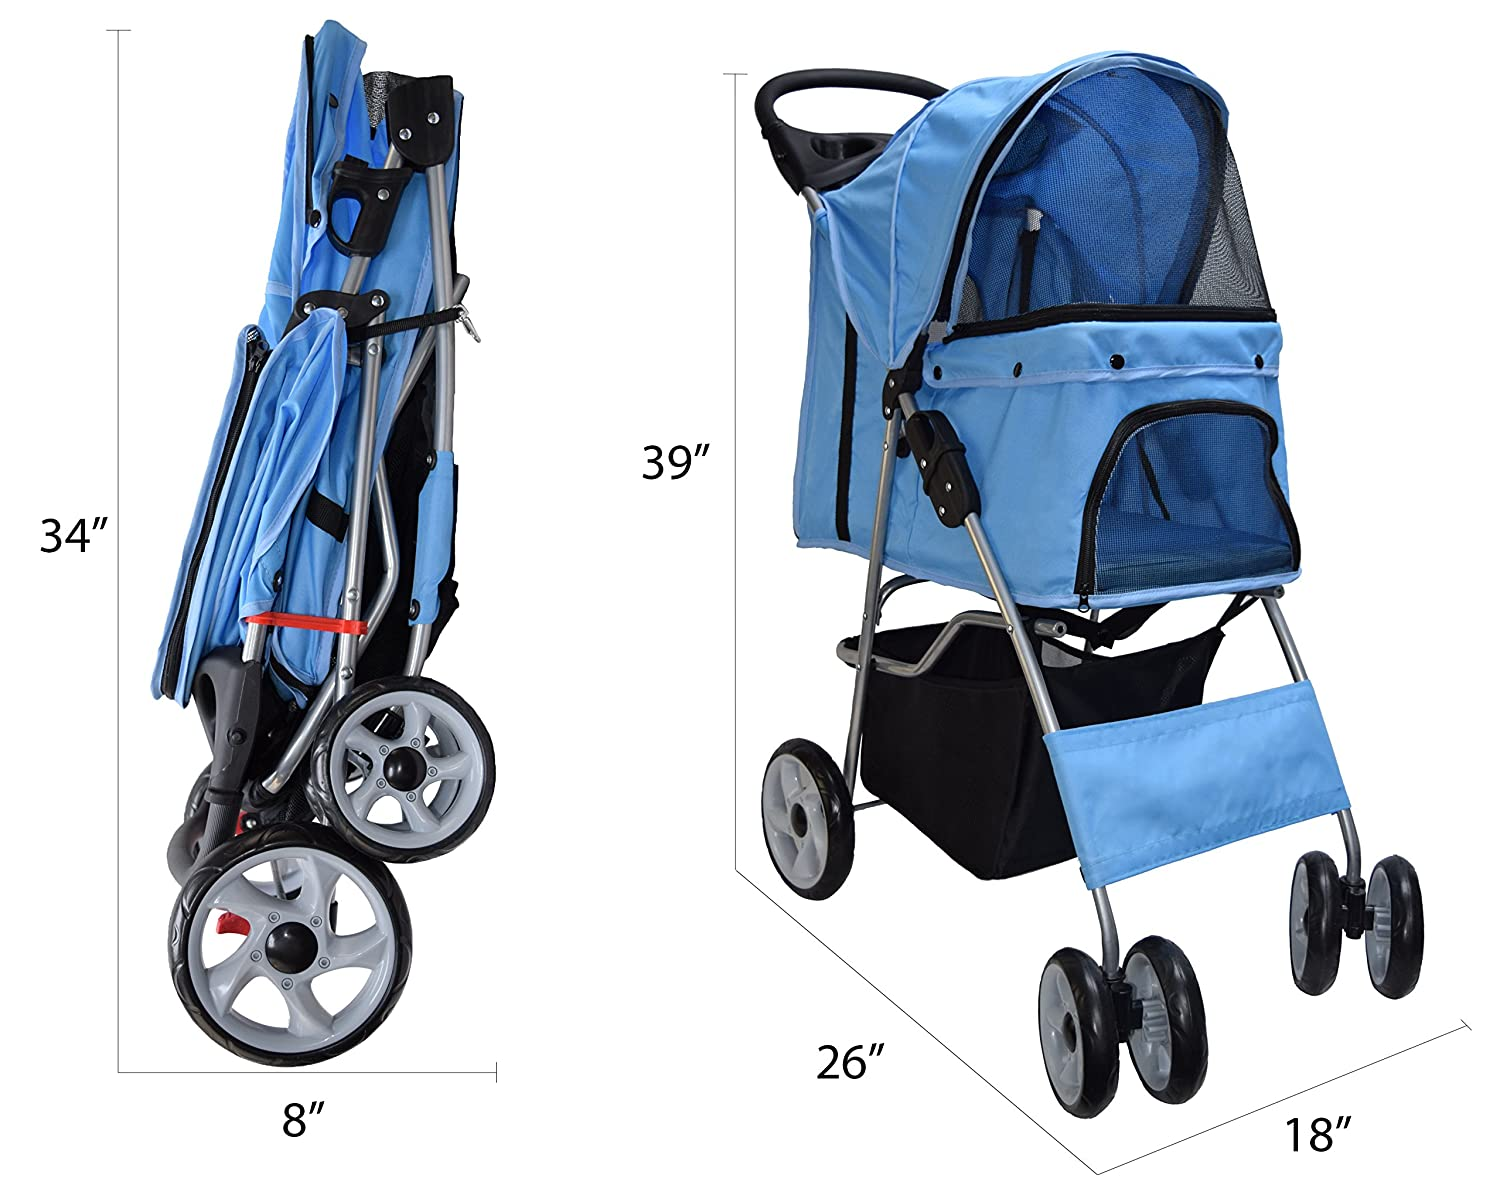 VIVO Four Wheel Pet Stroller, for Cat, or Dog, Foldable Carrier Strolling Cart, Multiple Colors (Blue)